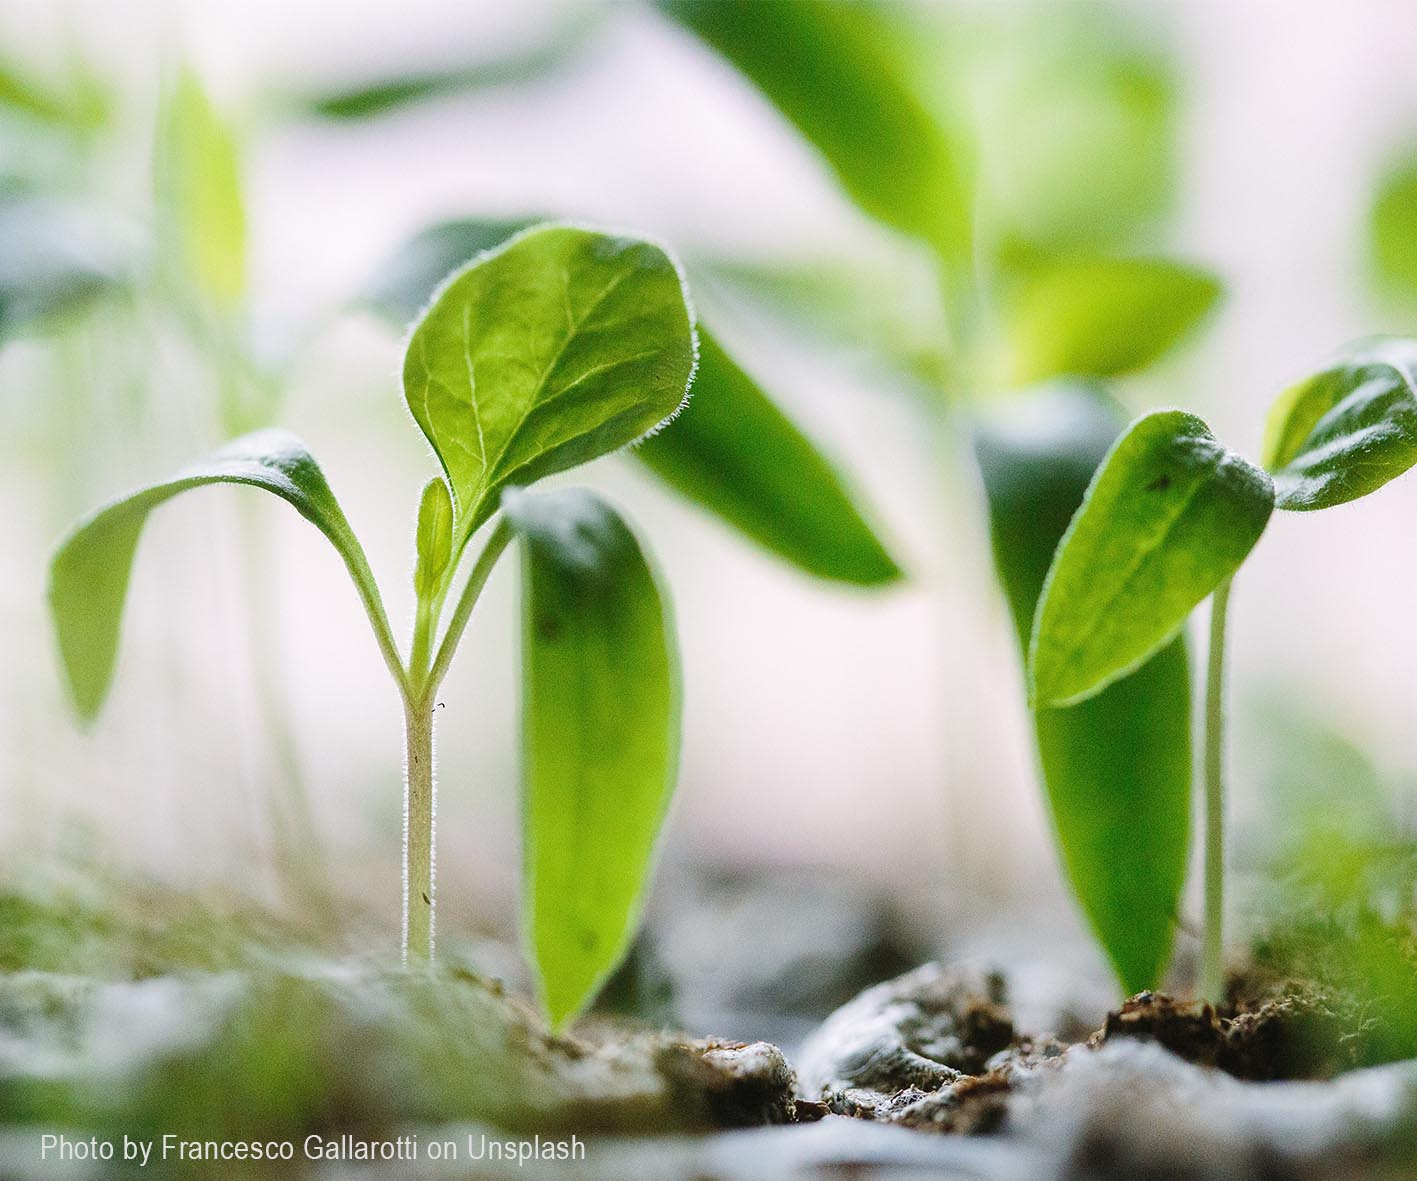 How-to-Grow-Your-Garden-From-Seeds - How-to-Grow-Your-Garden-From-Seeds